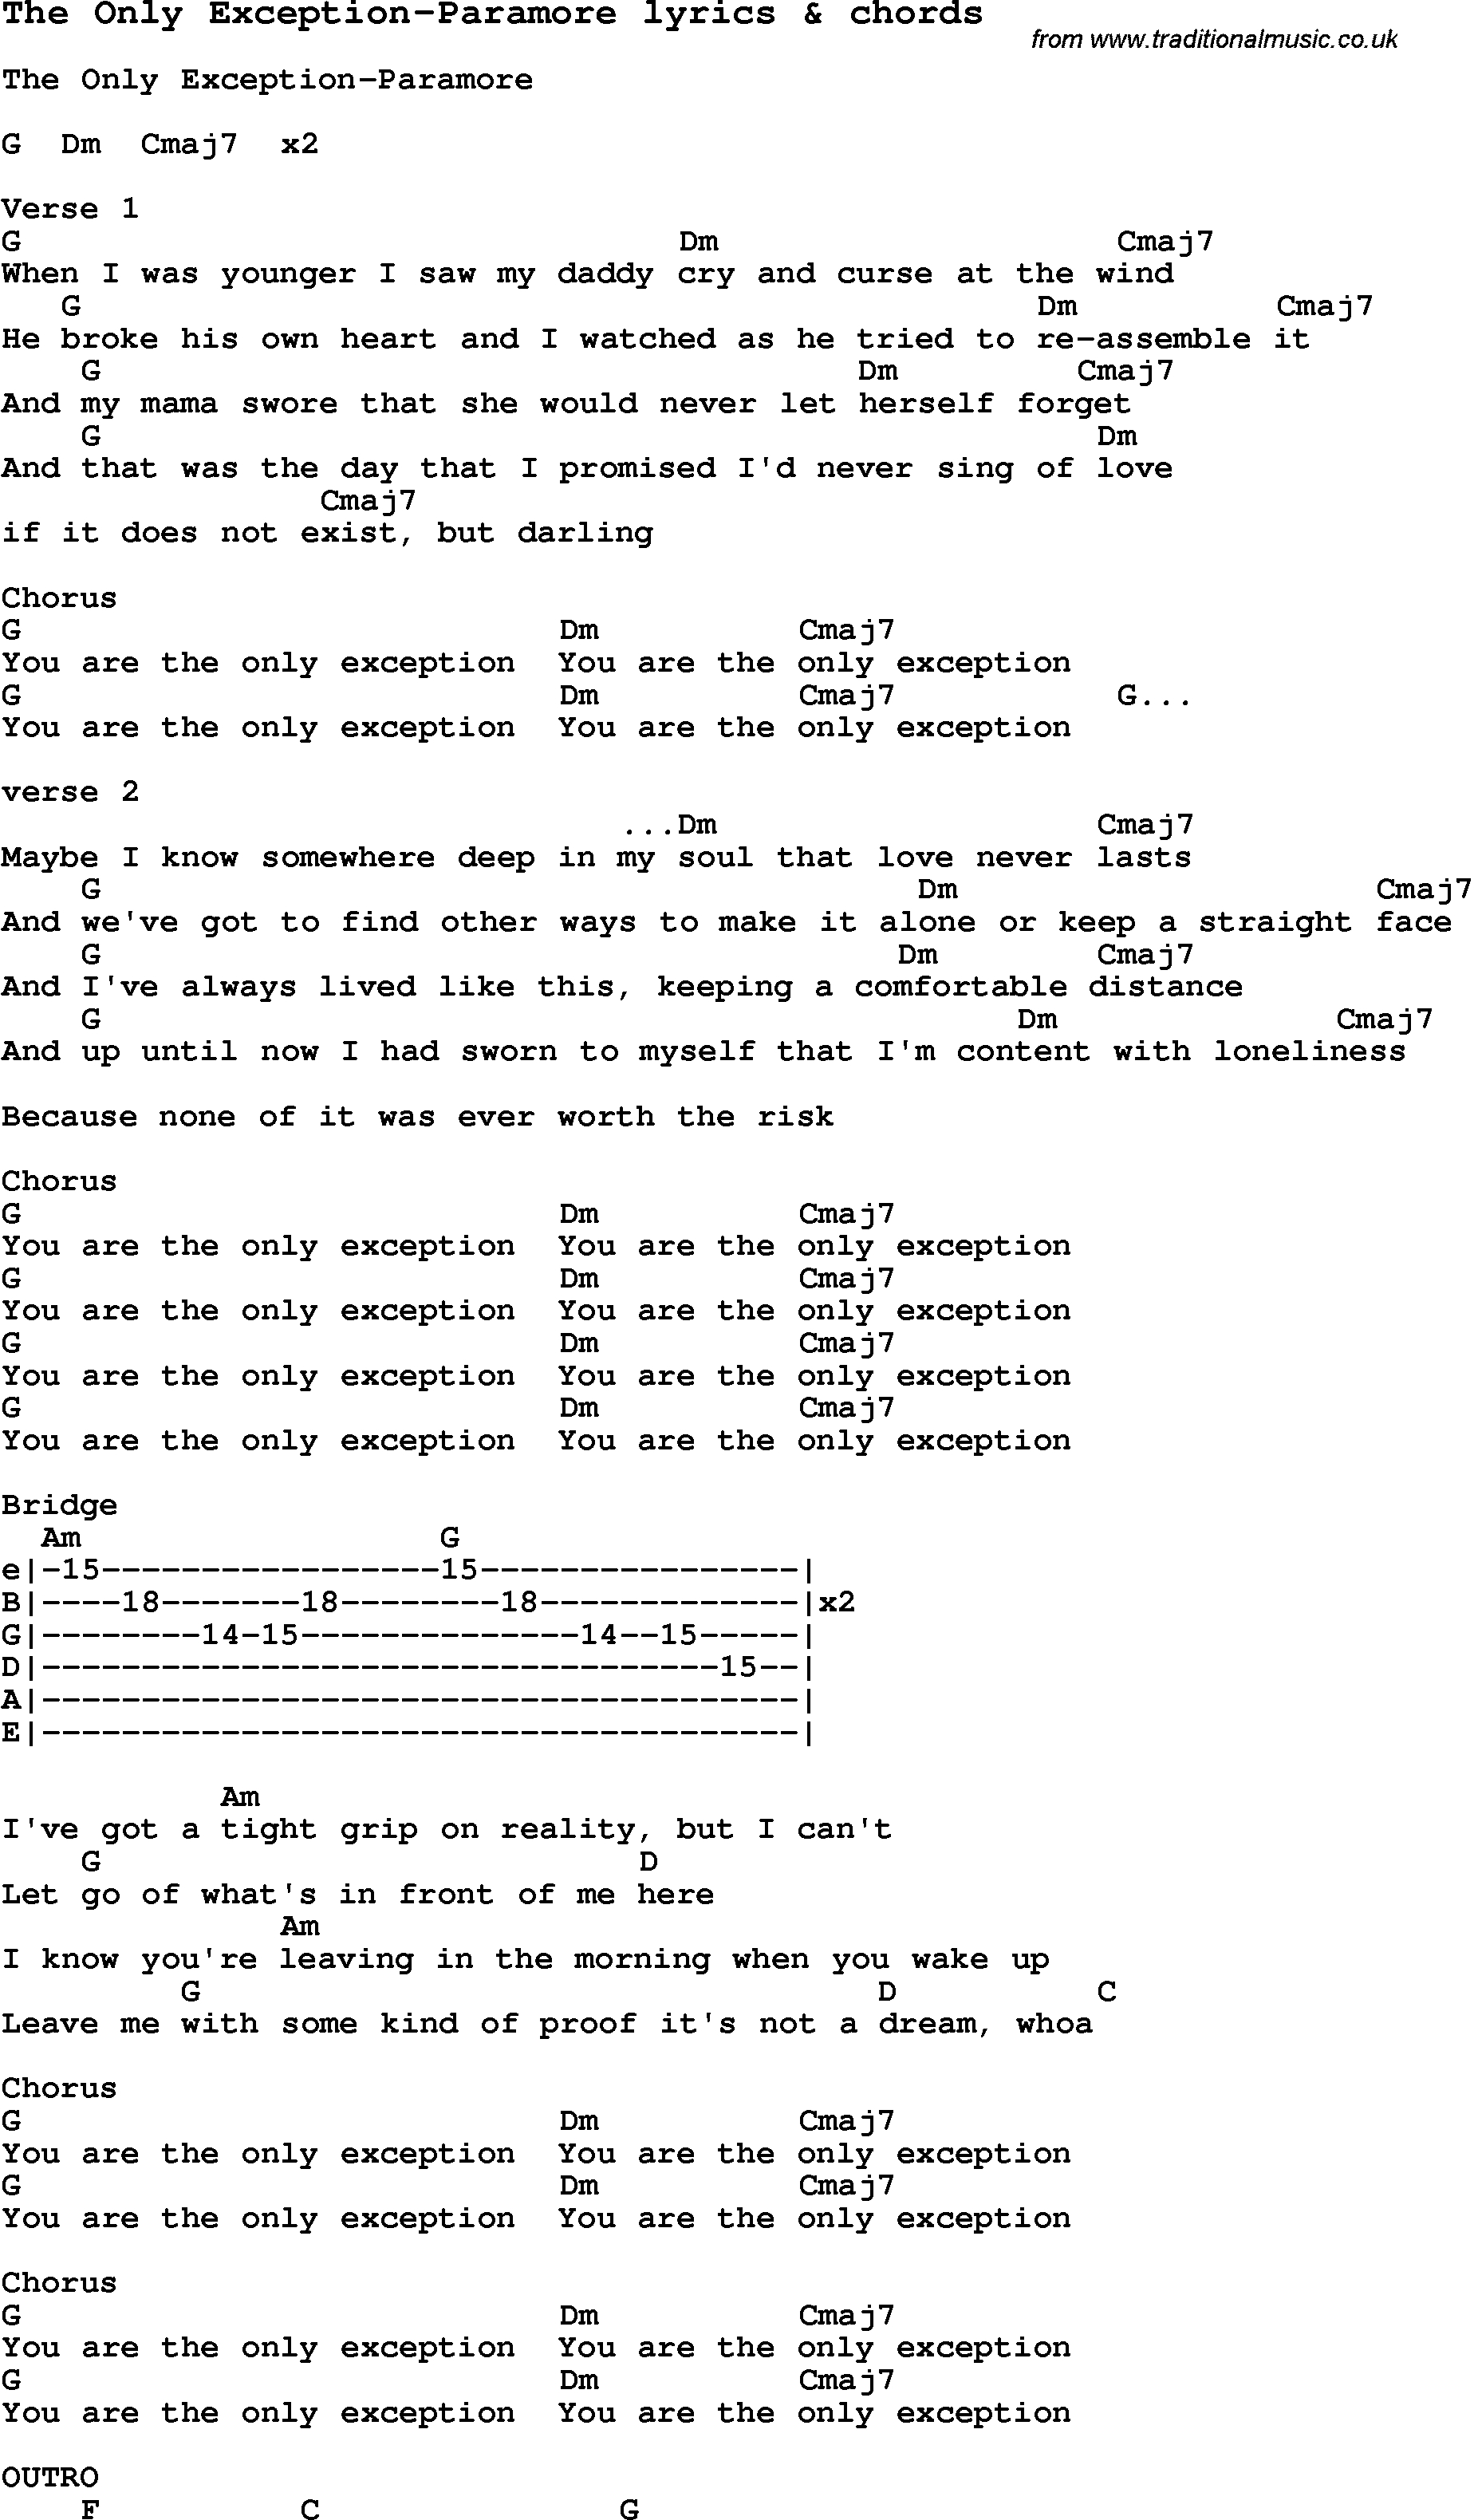 The Only Exception Chords Love Song Lyrics Forthe Only Exception Paramore With Chords